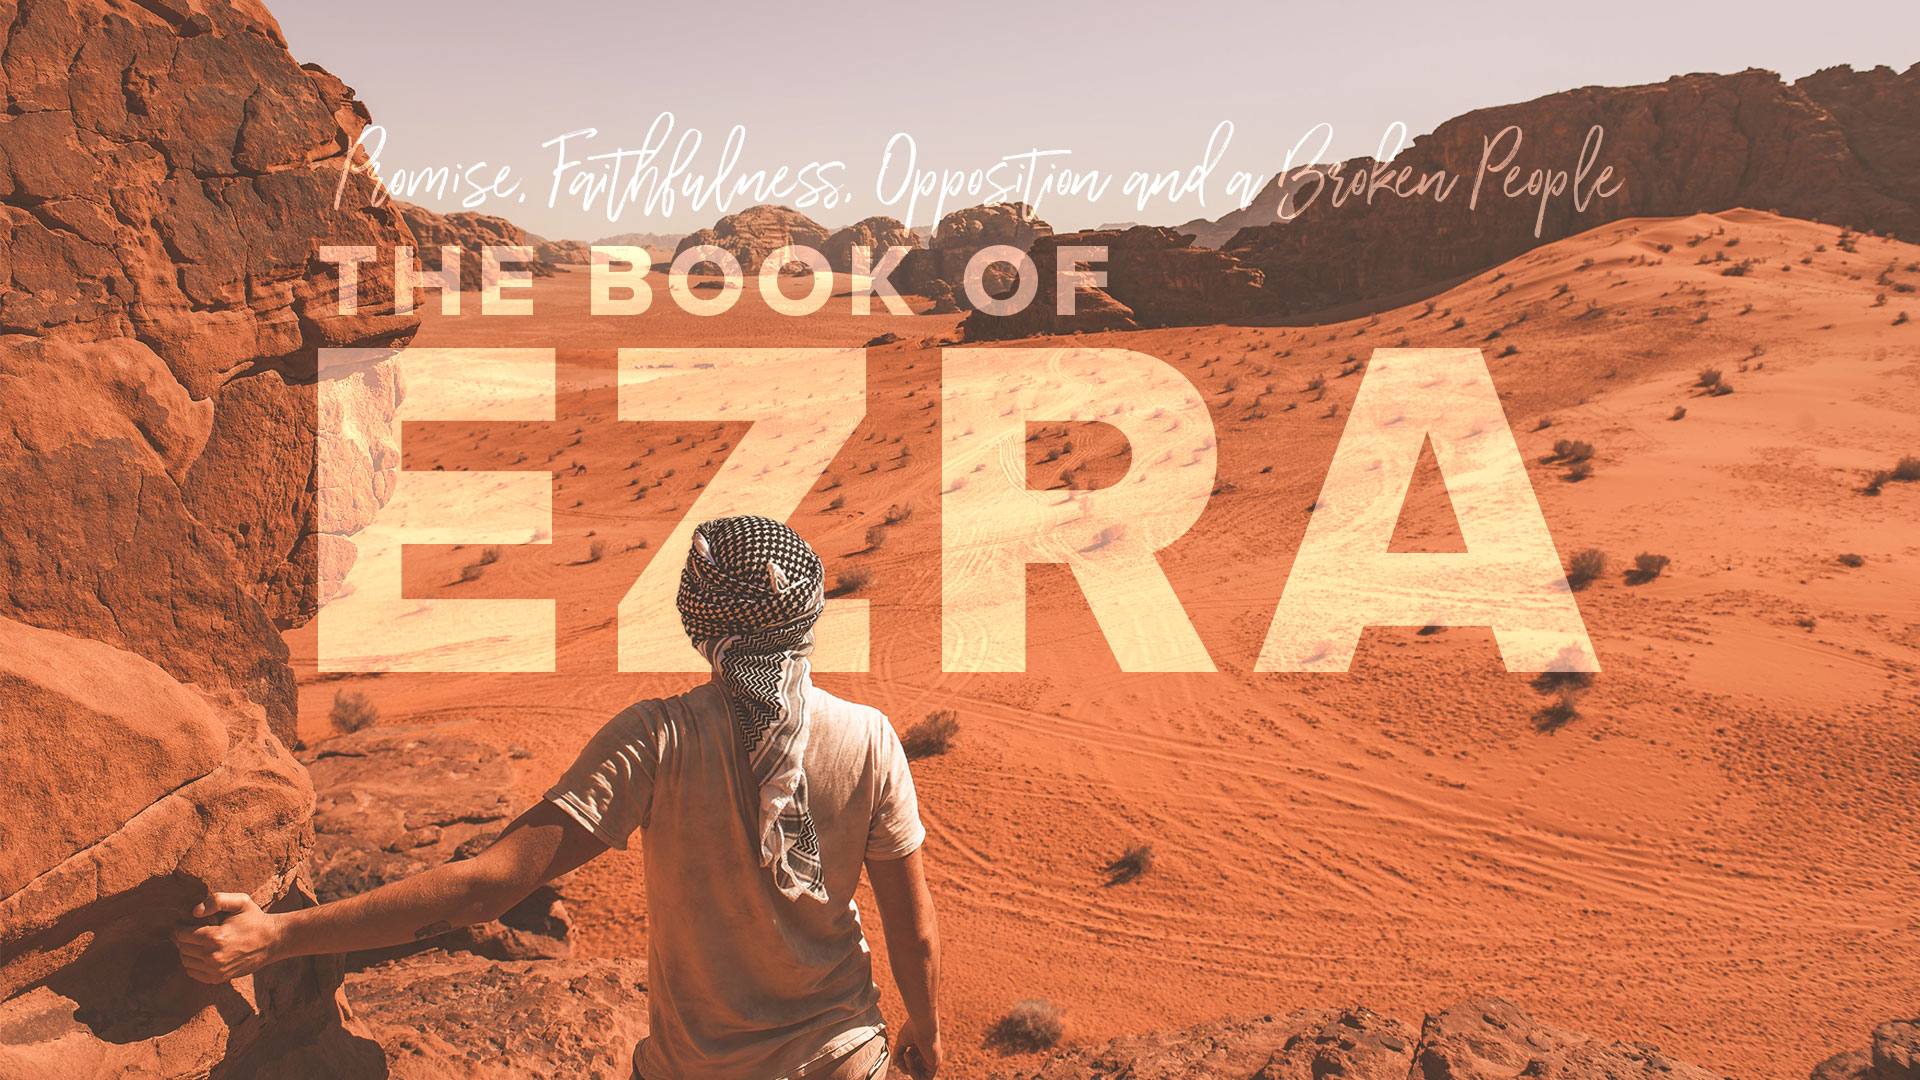 The Book of Ezra Series